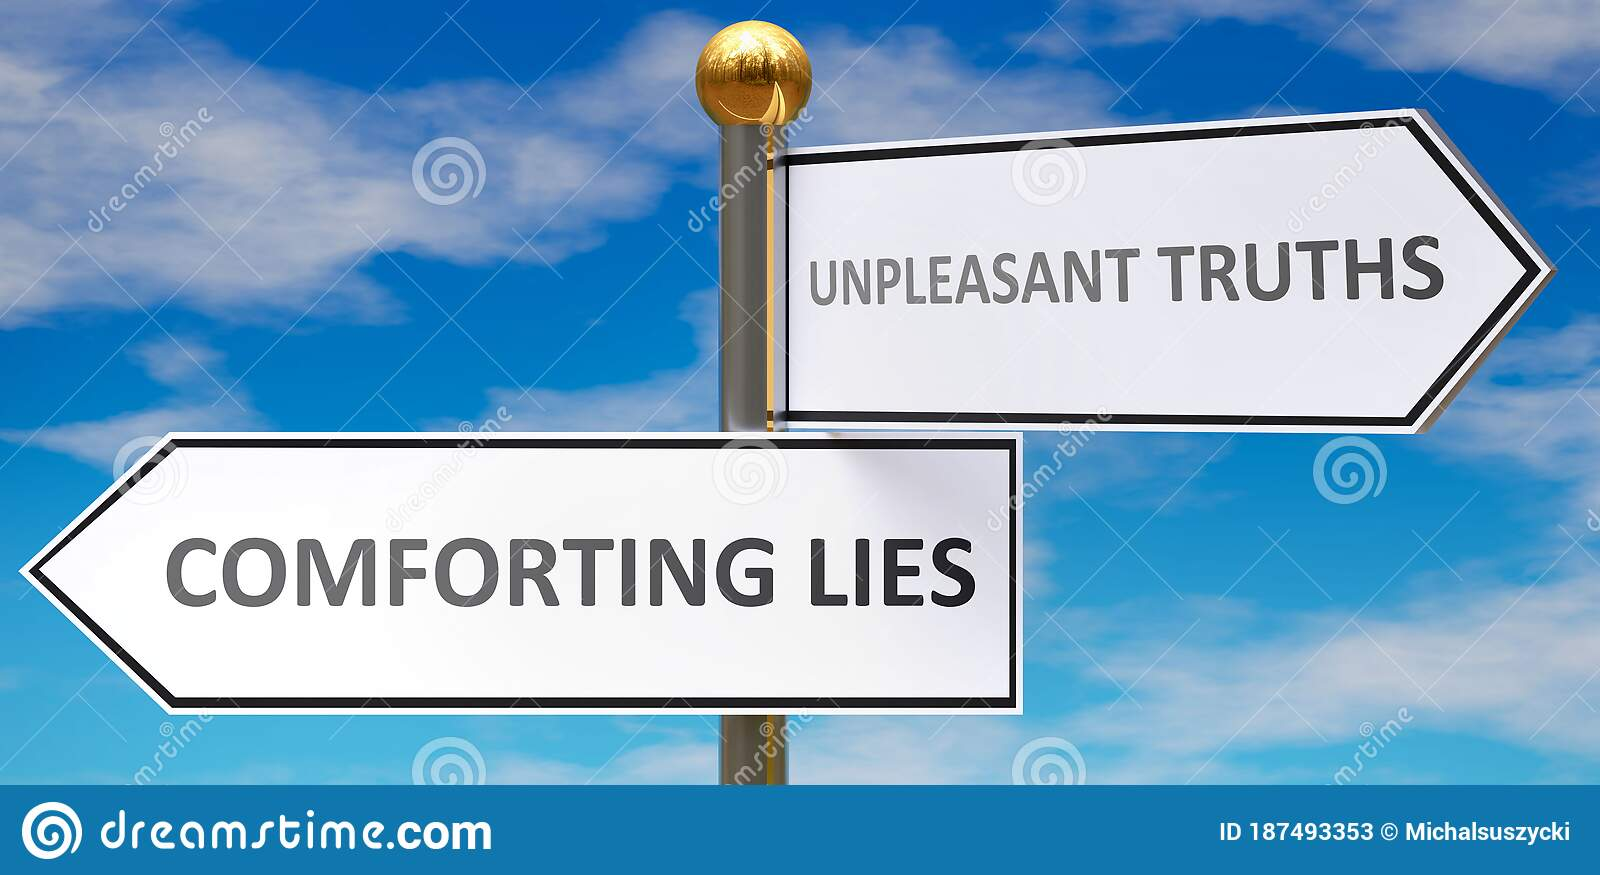 Comforting Lies And Unpleasant Truths As Different Choices ...